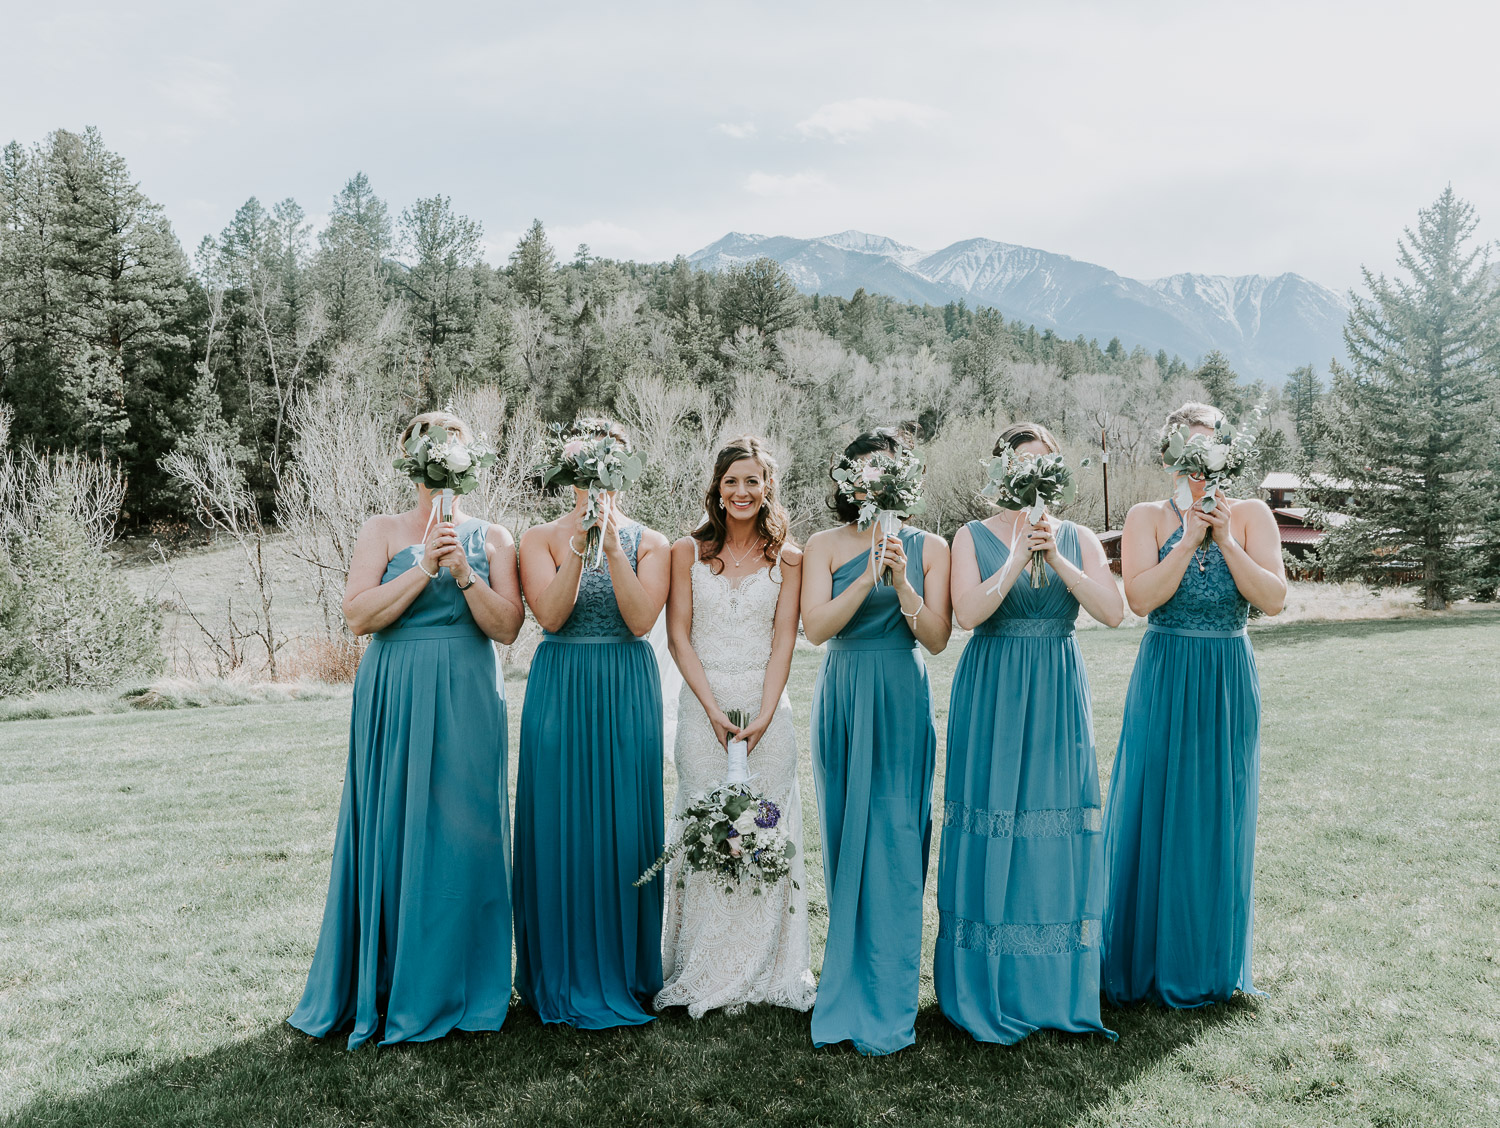 Colorado Wedding, Colorado Wedding Photographer, Mount Princeton Hot Springs, Buena Vista, Elopement Photography, bridesmaids